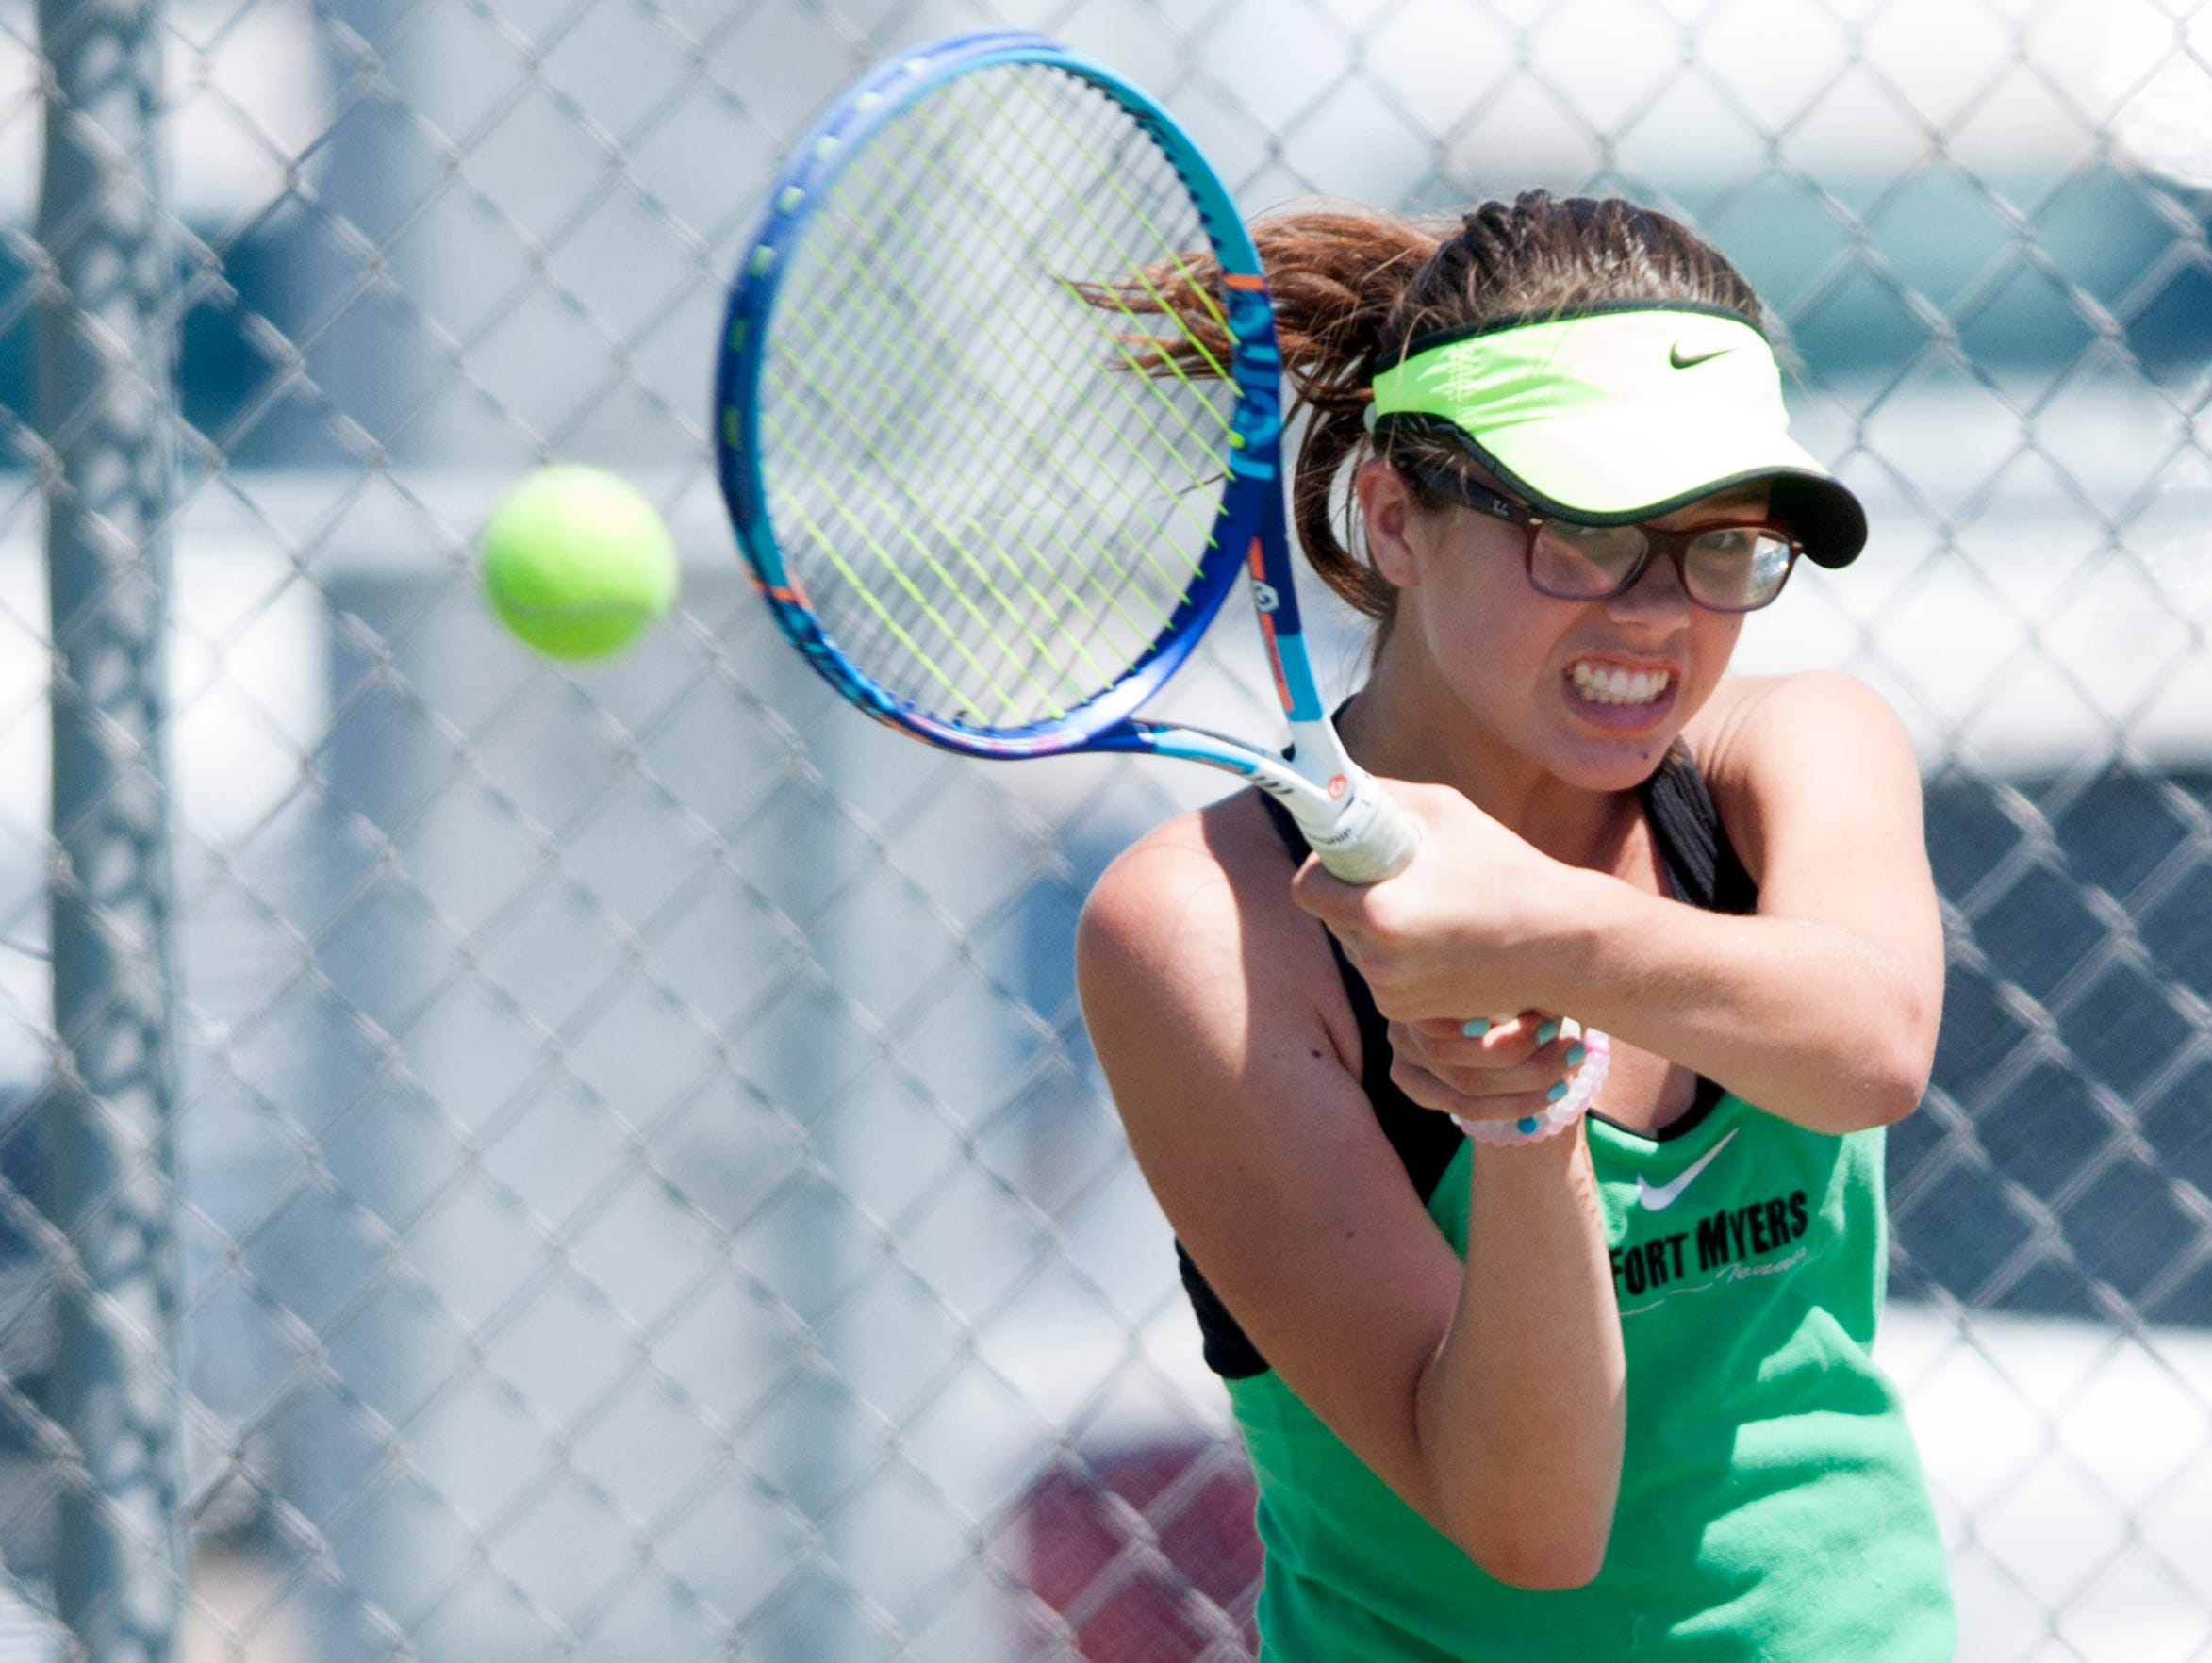 Marina Lombardo, of the Fort Myers High School tennis team, makes a return while competing against Barron Collier's Tori Franklin during the Region 3A-3 girls tennis regional semifinal on Tuesday.